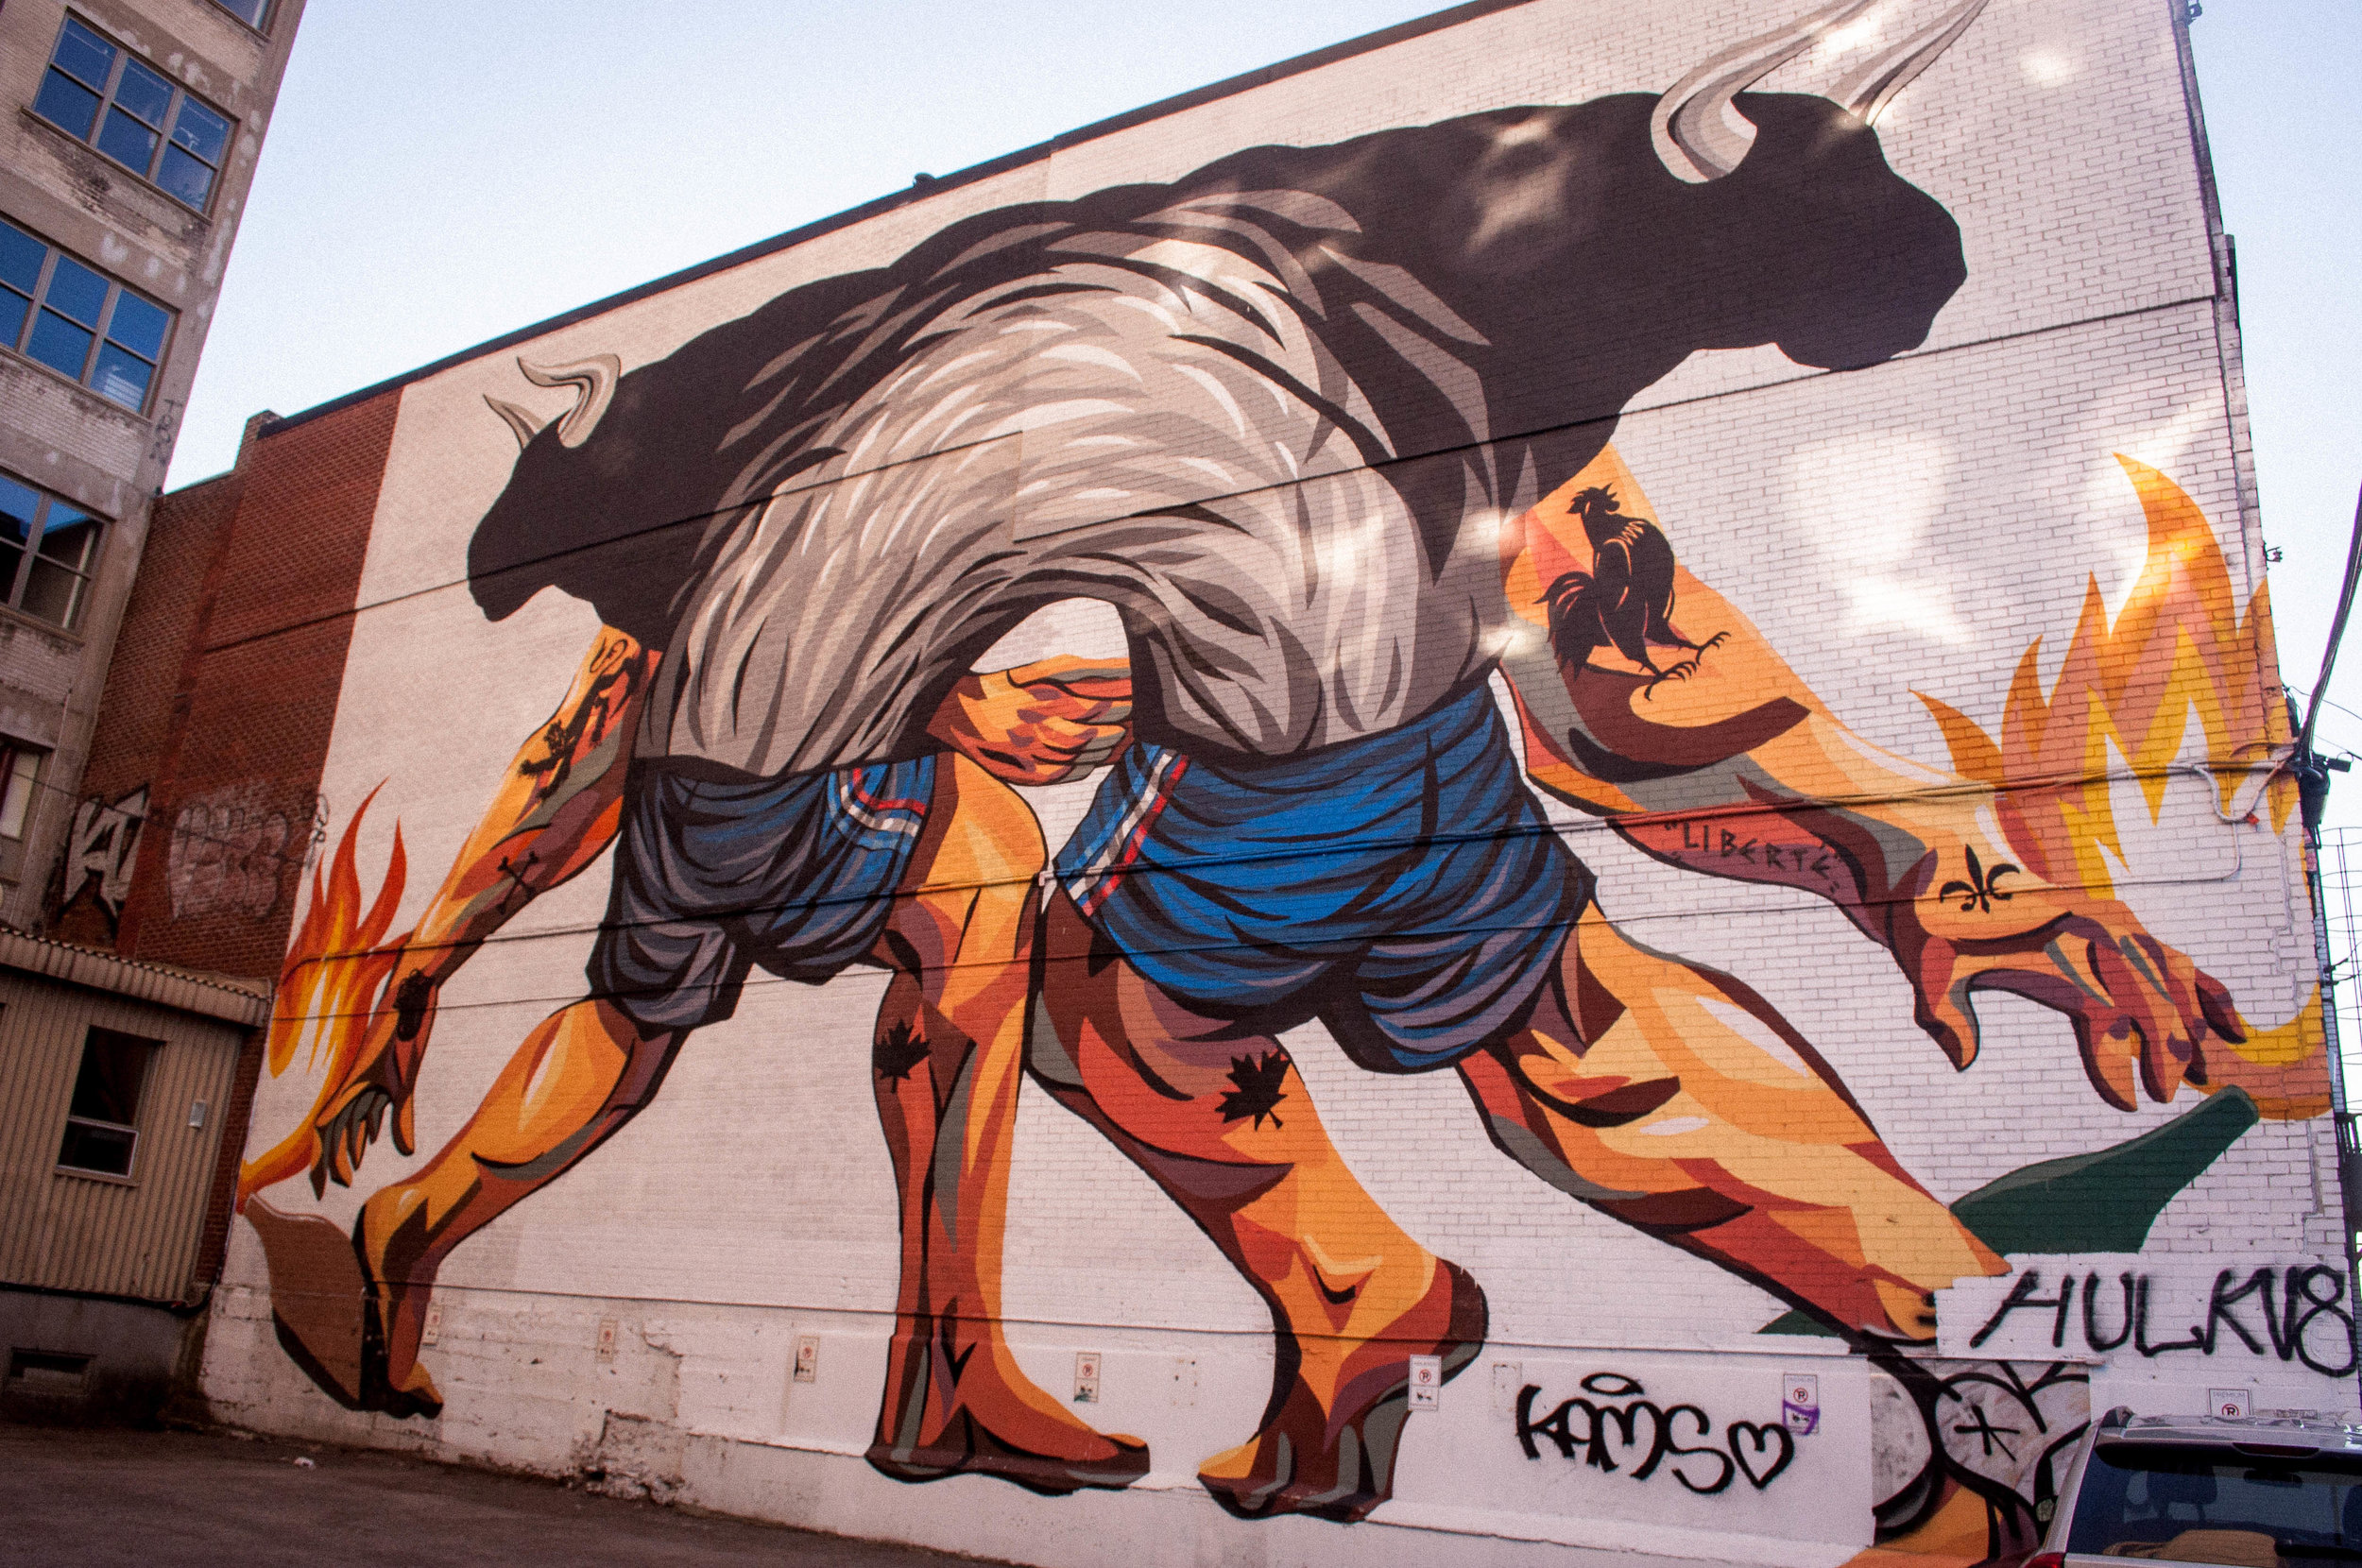 Graffiti on rue Saint-Dominique (Montreal) of half-men and half-bull. Graffiti proposed as the best street art in Montreal